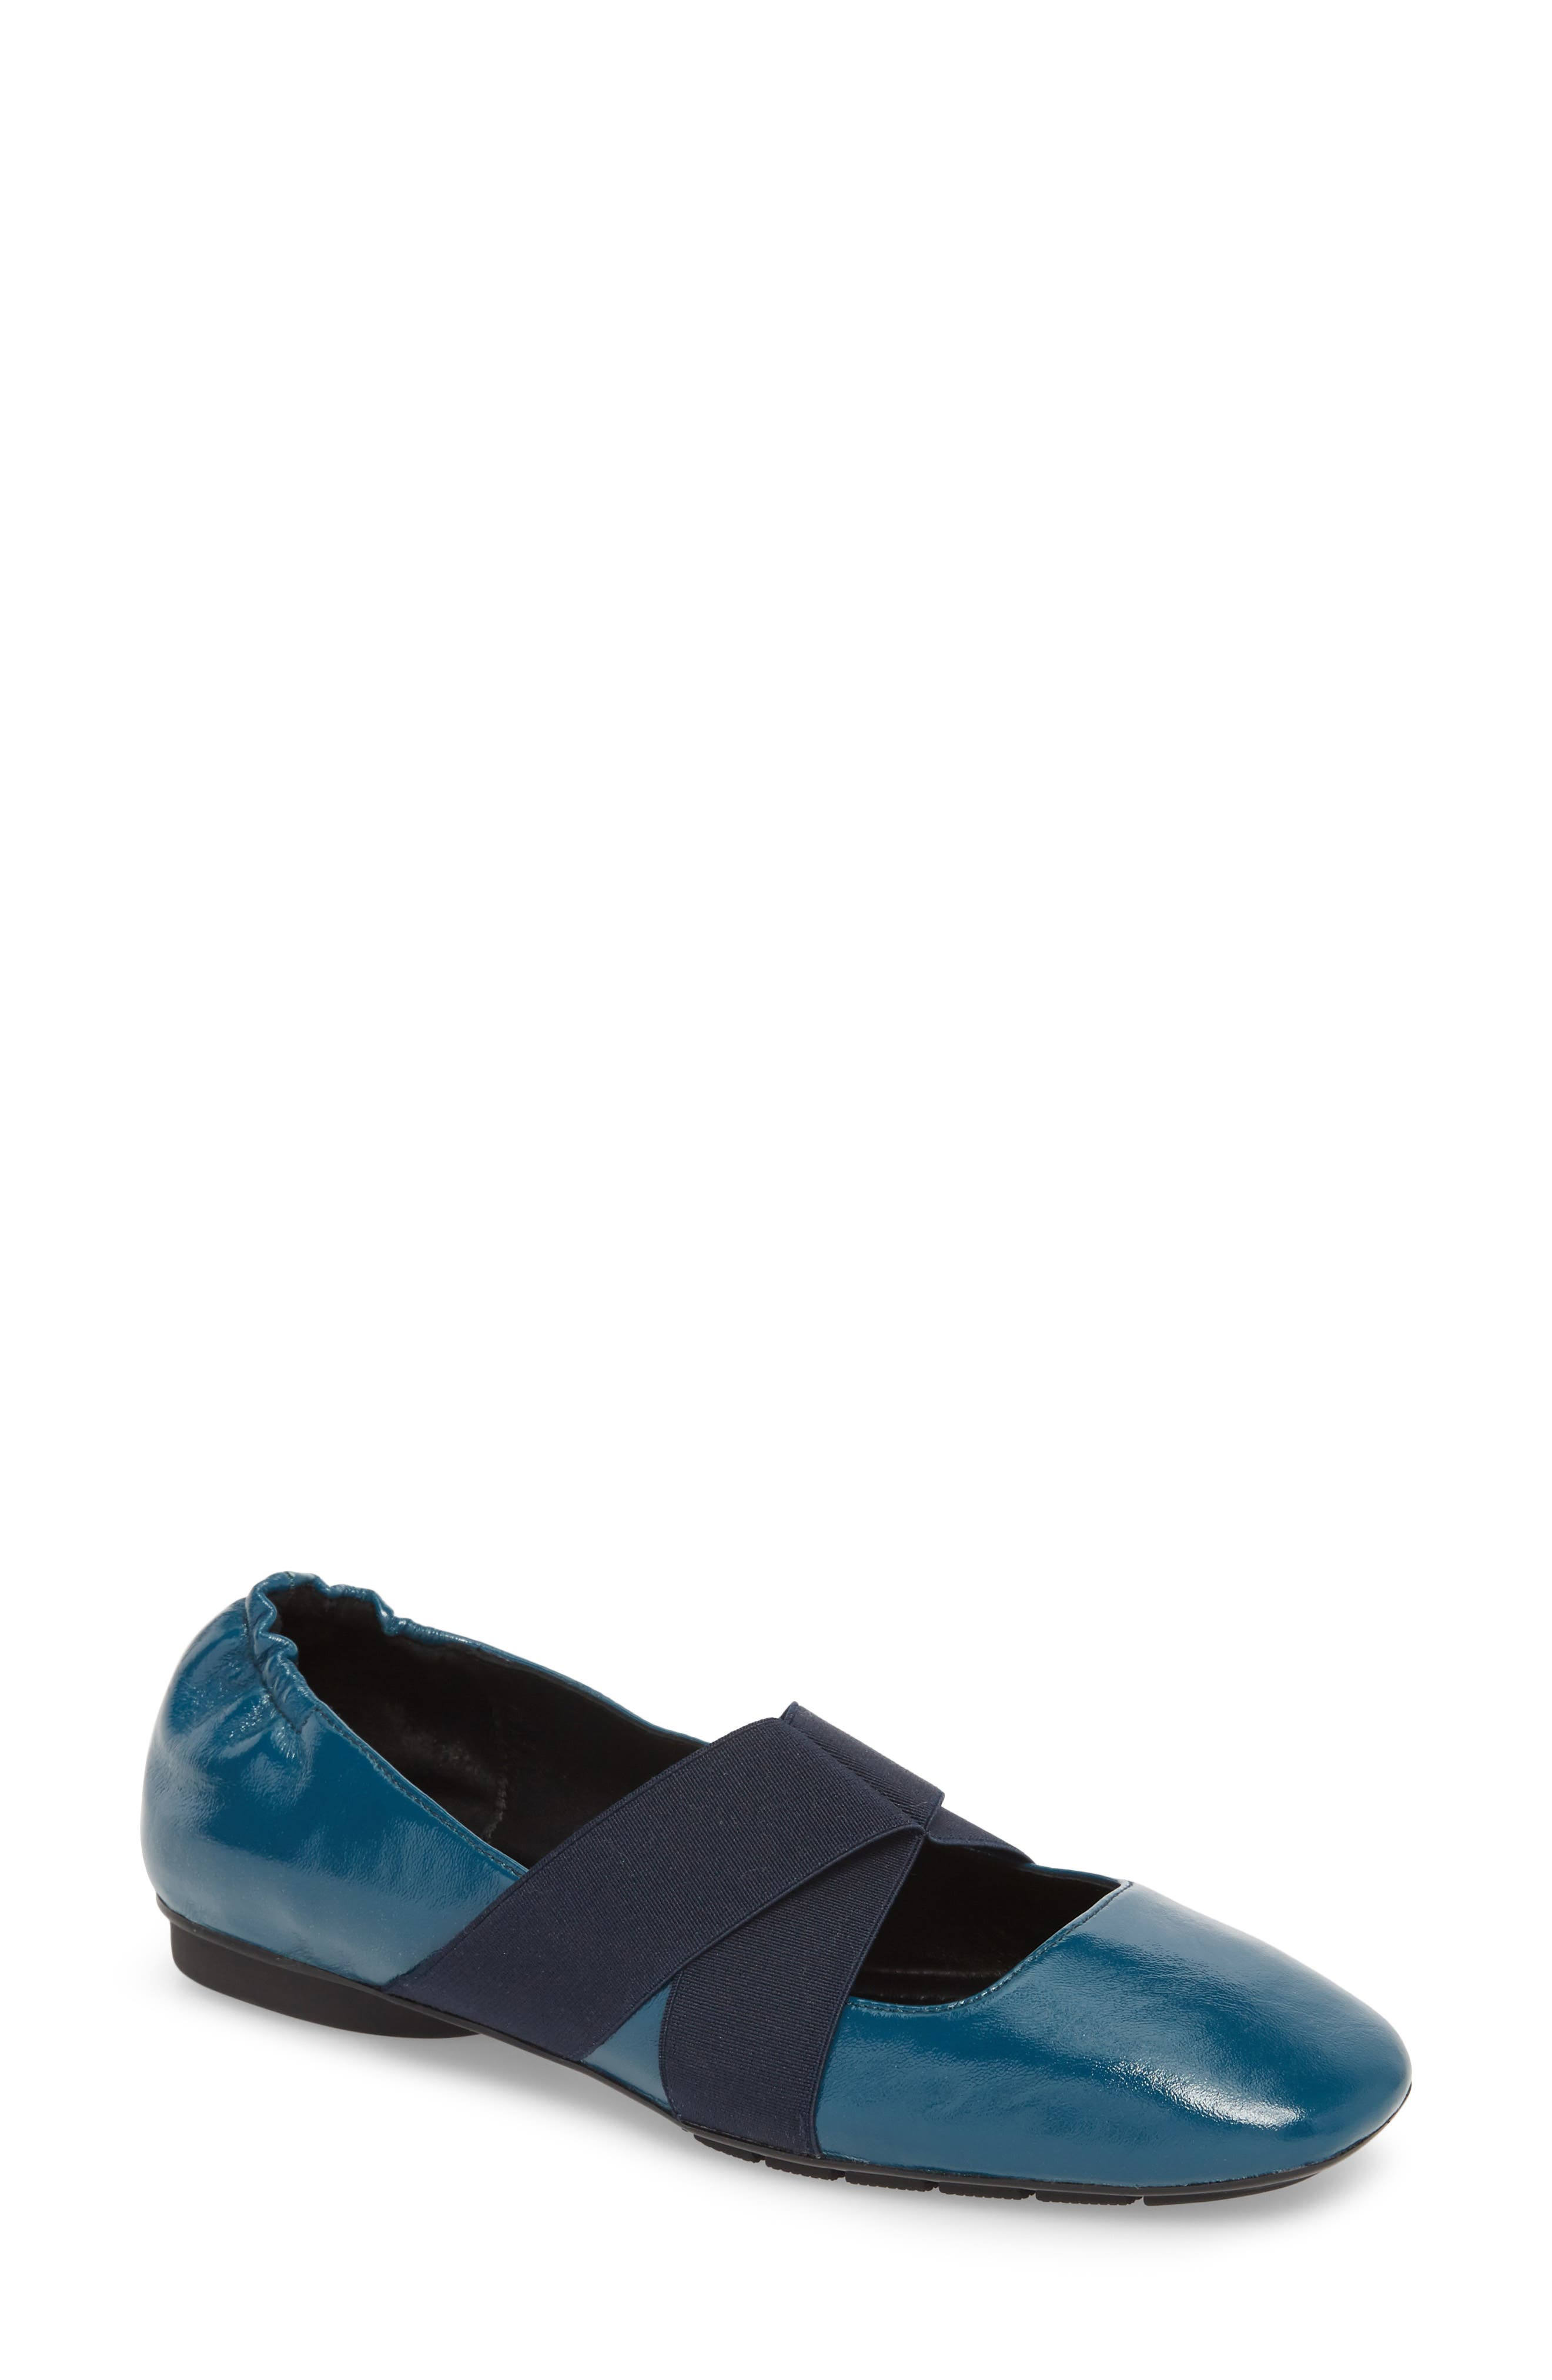 Danae Flat,                             Main thumbnail 1, color,                             NAVY LEATHER